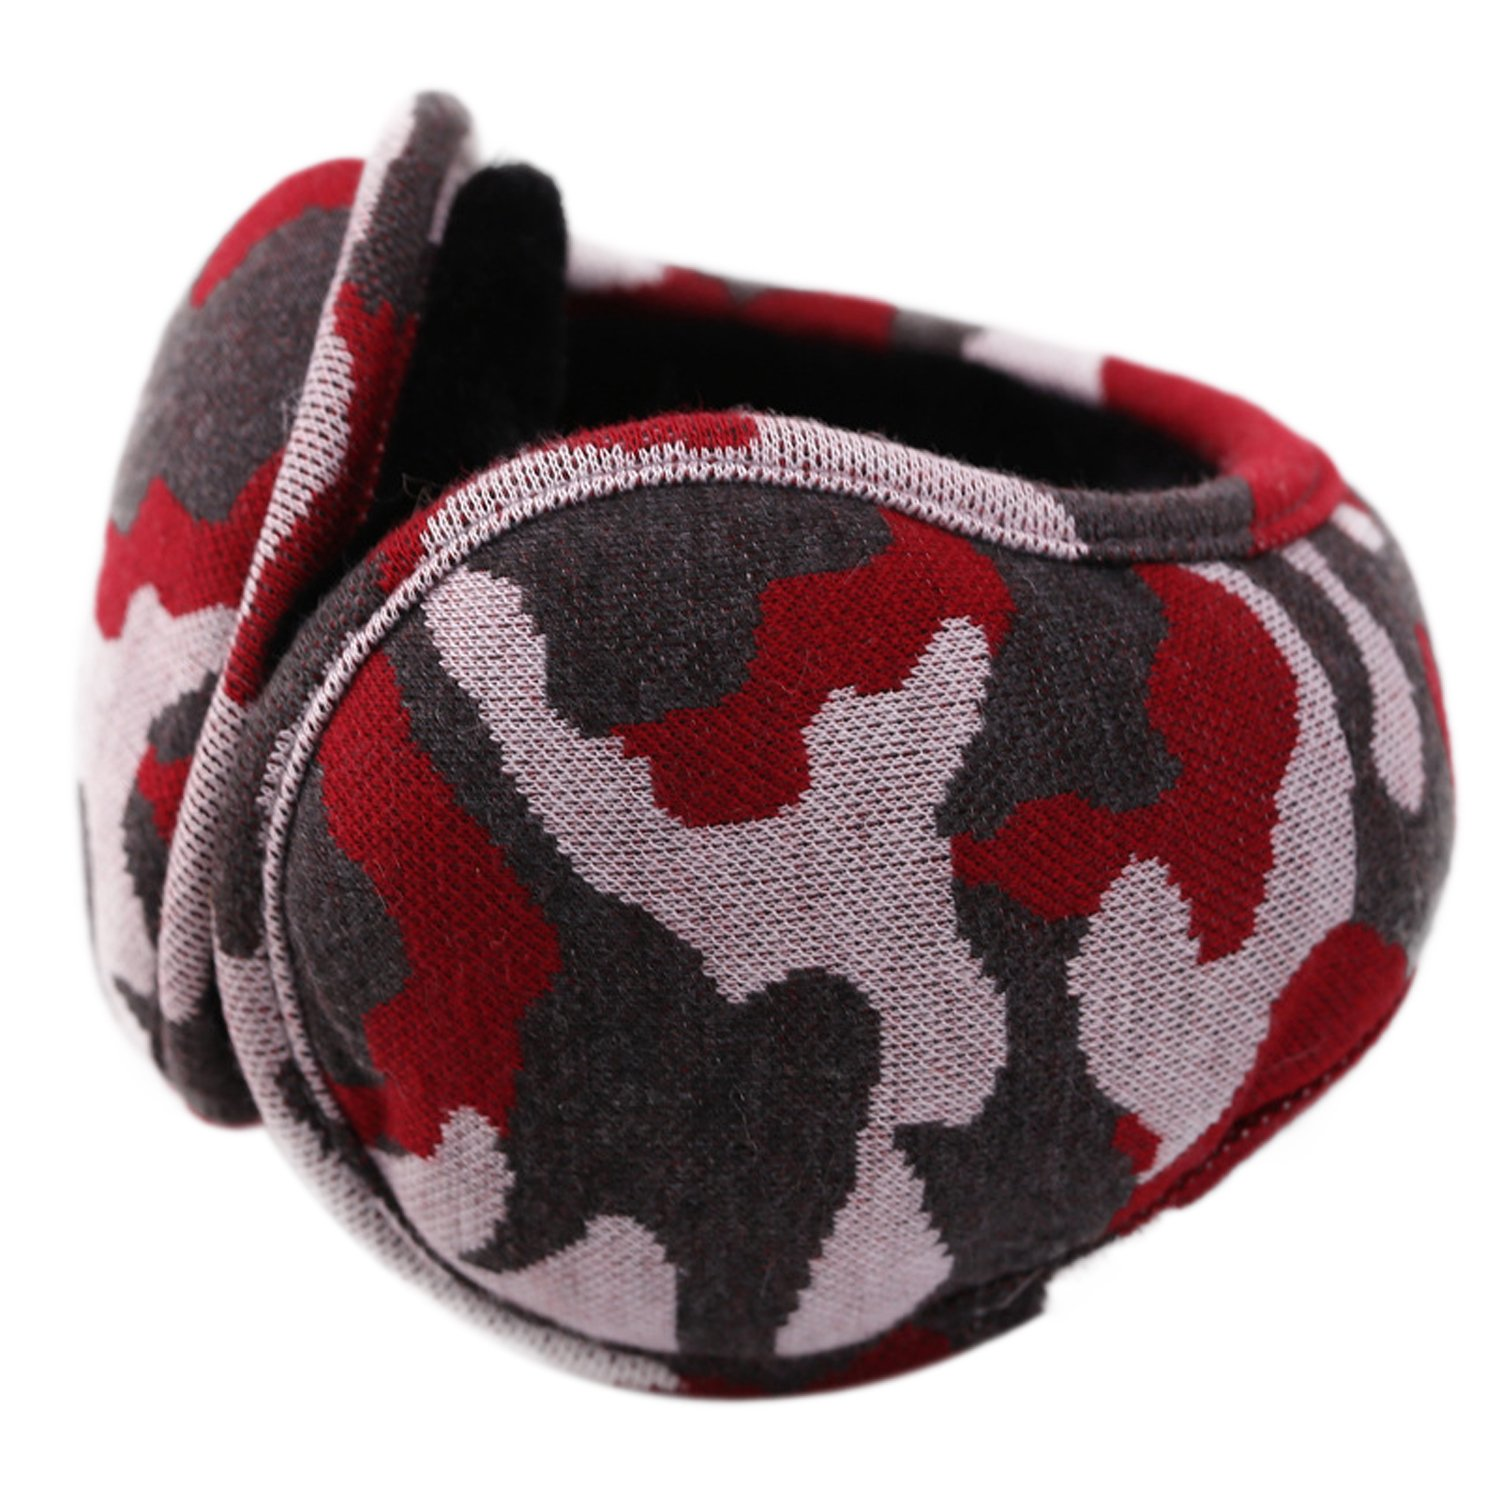 Brave Tour Unisex Earmuffs Simple Camouflage Earmuffs Lined Compact Winter Warm Earmuffs(camou-red) by Brave Tour